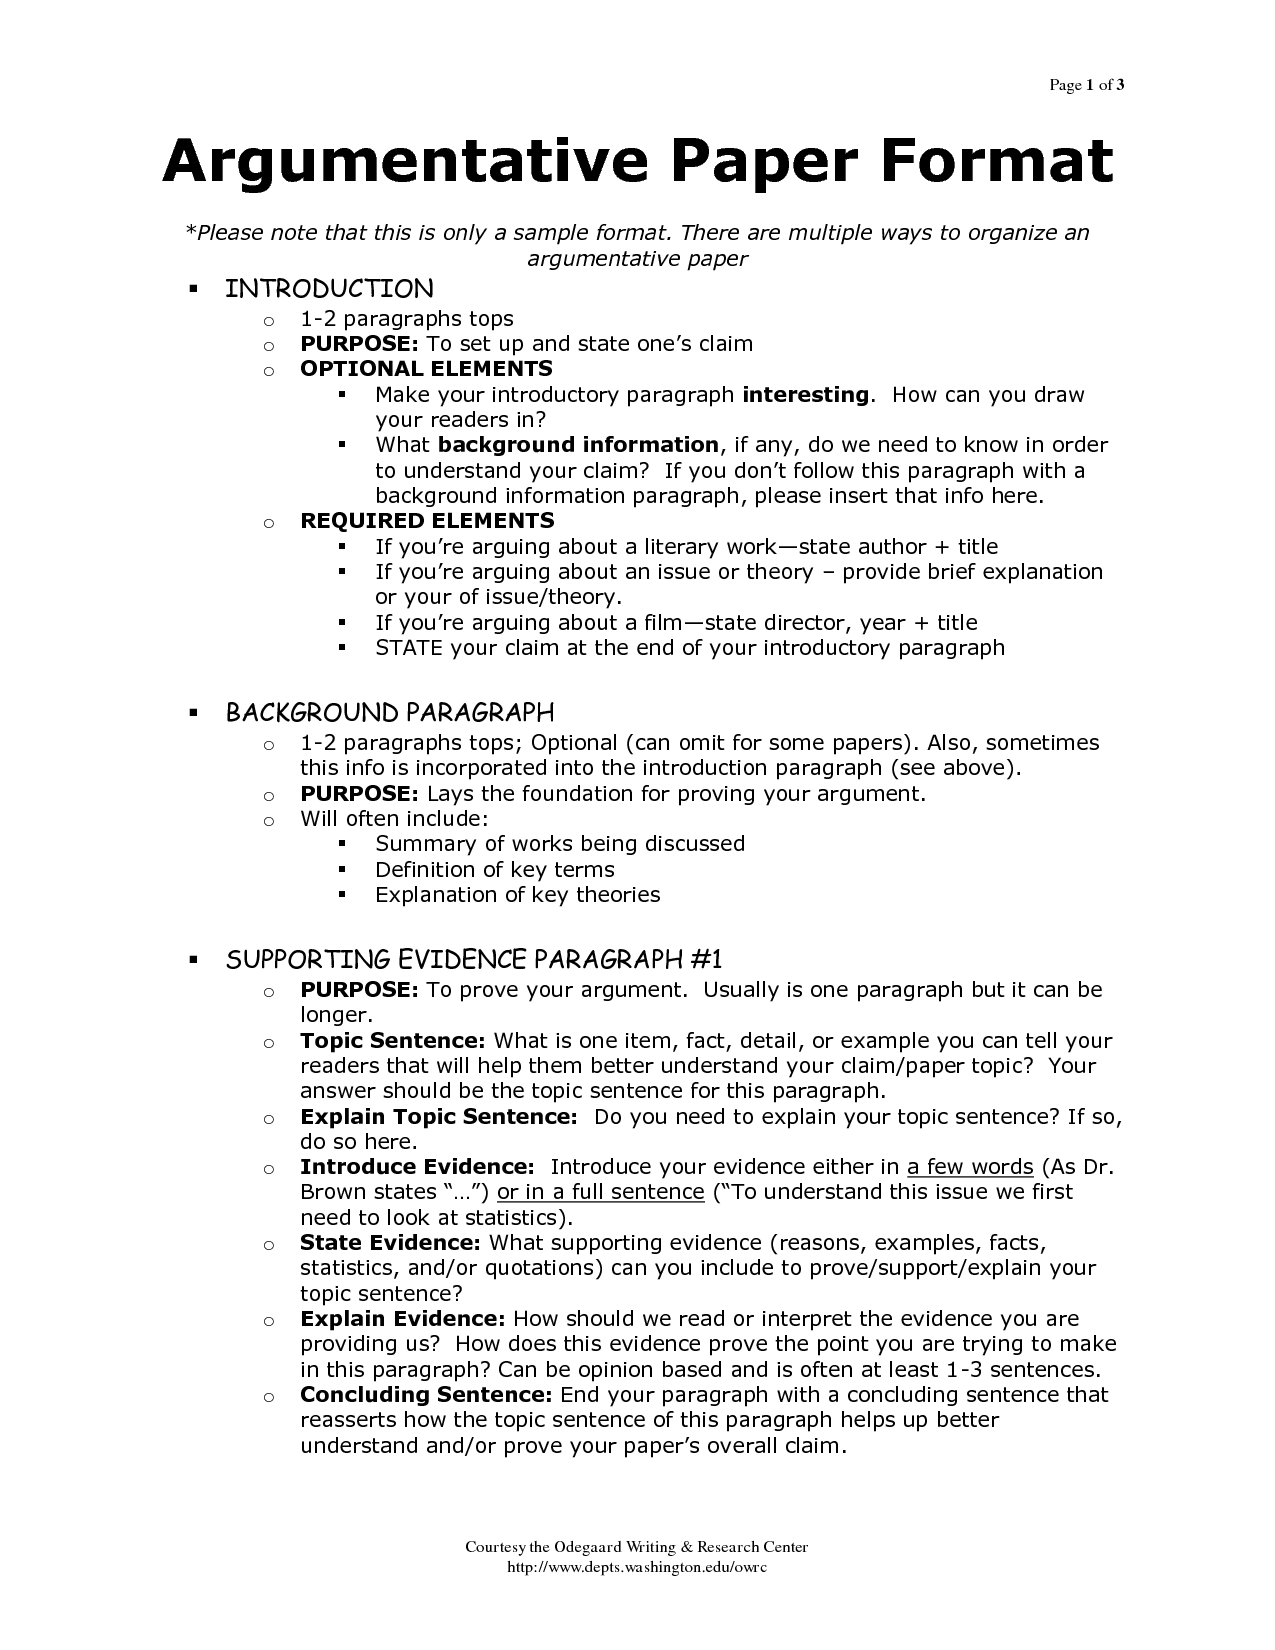 008 Write An Argumentative Essay Surprising Sample Example In Which You State And Defend Full